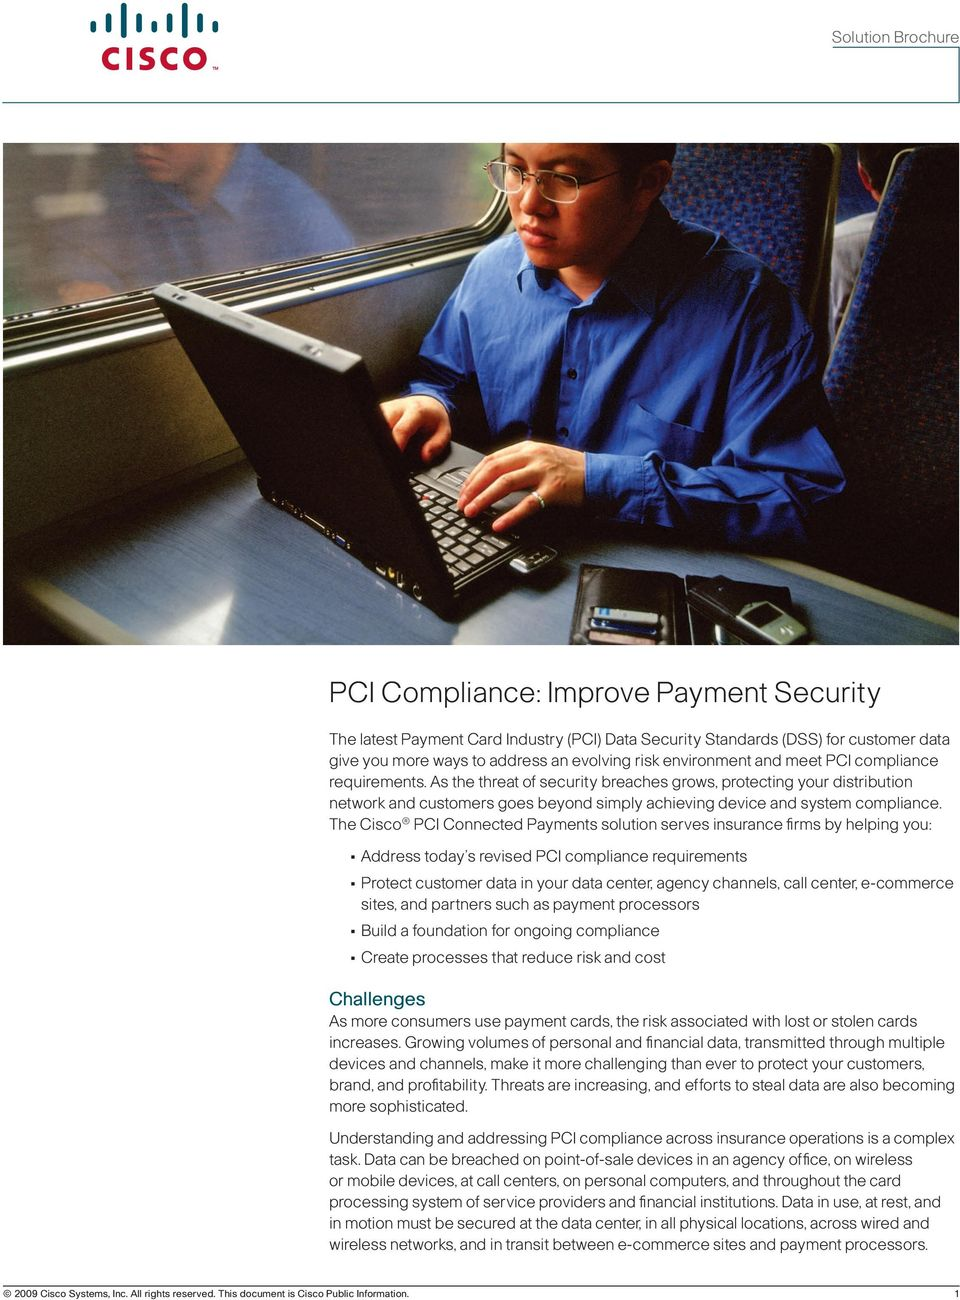 The Cisco PCI Connected Payments solution serves insurance firms by helping you: Address today s revised PCI compliance requirements Protect customer data in your data center, agency channels, call